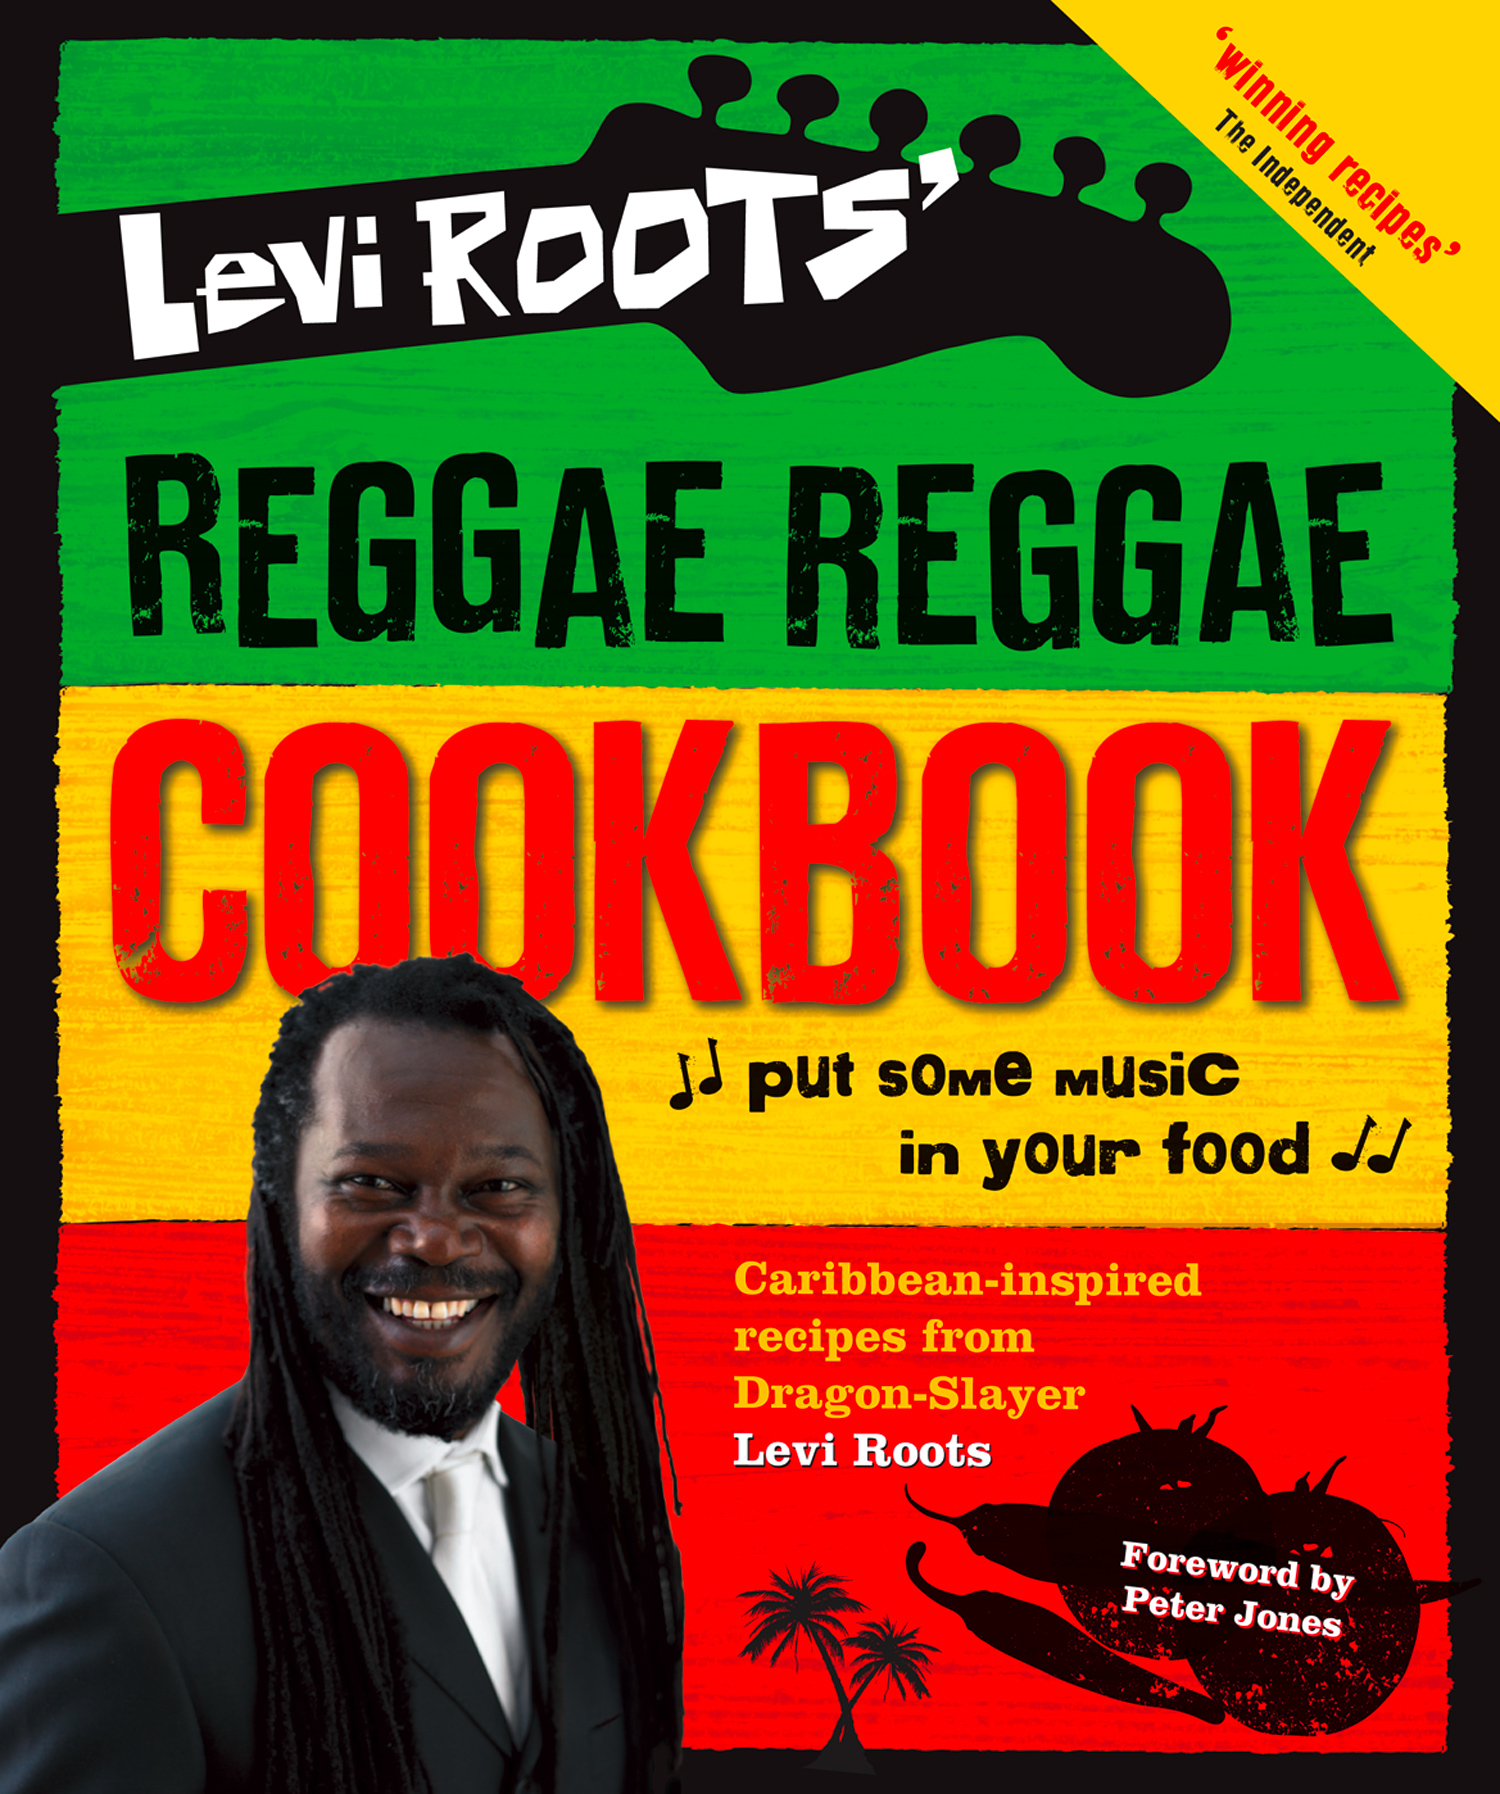 Levi Roots? Reggae Reggae Cookbook